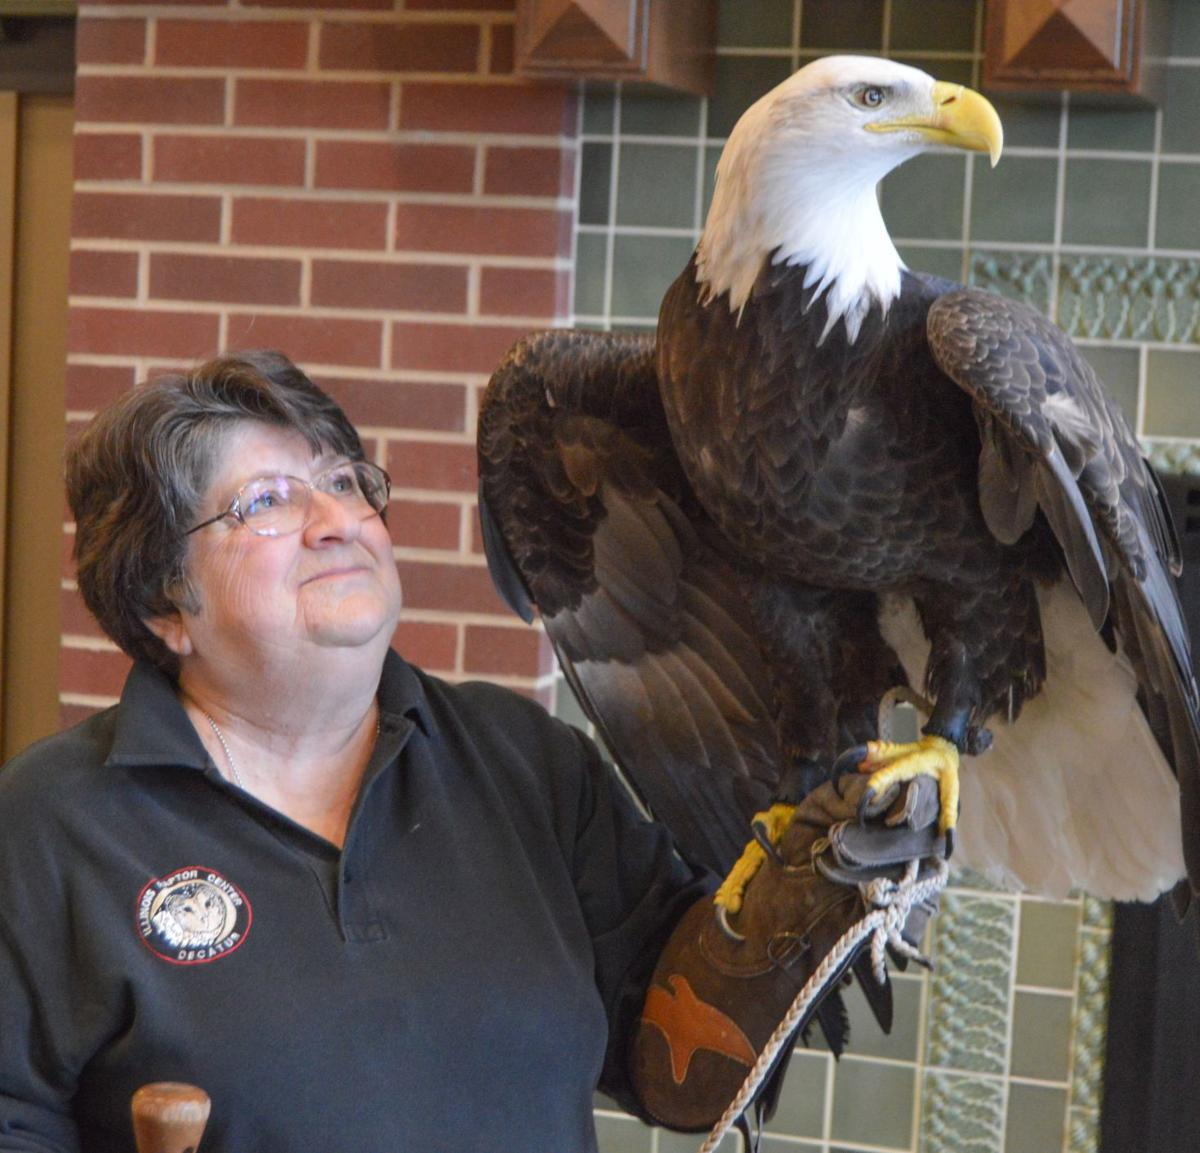 Kenny stars in \'Eagle Day\' at Lake Shelbyville | Local | herald ...